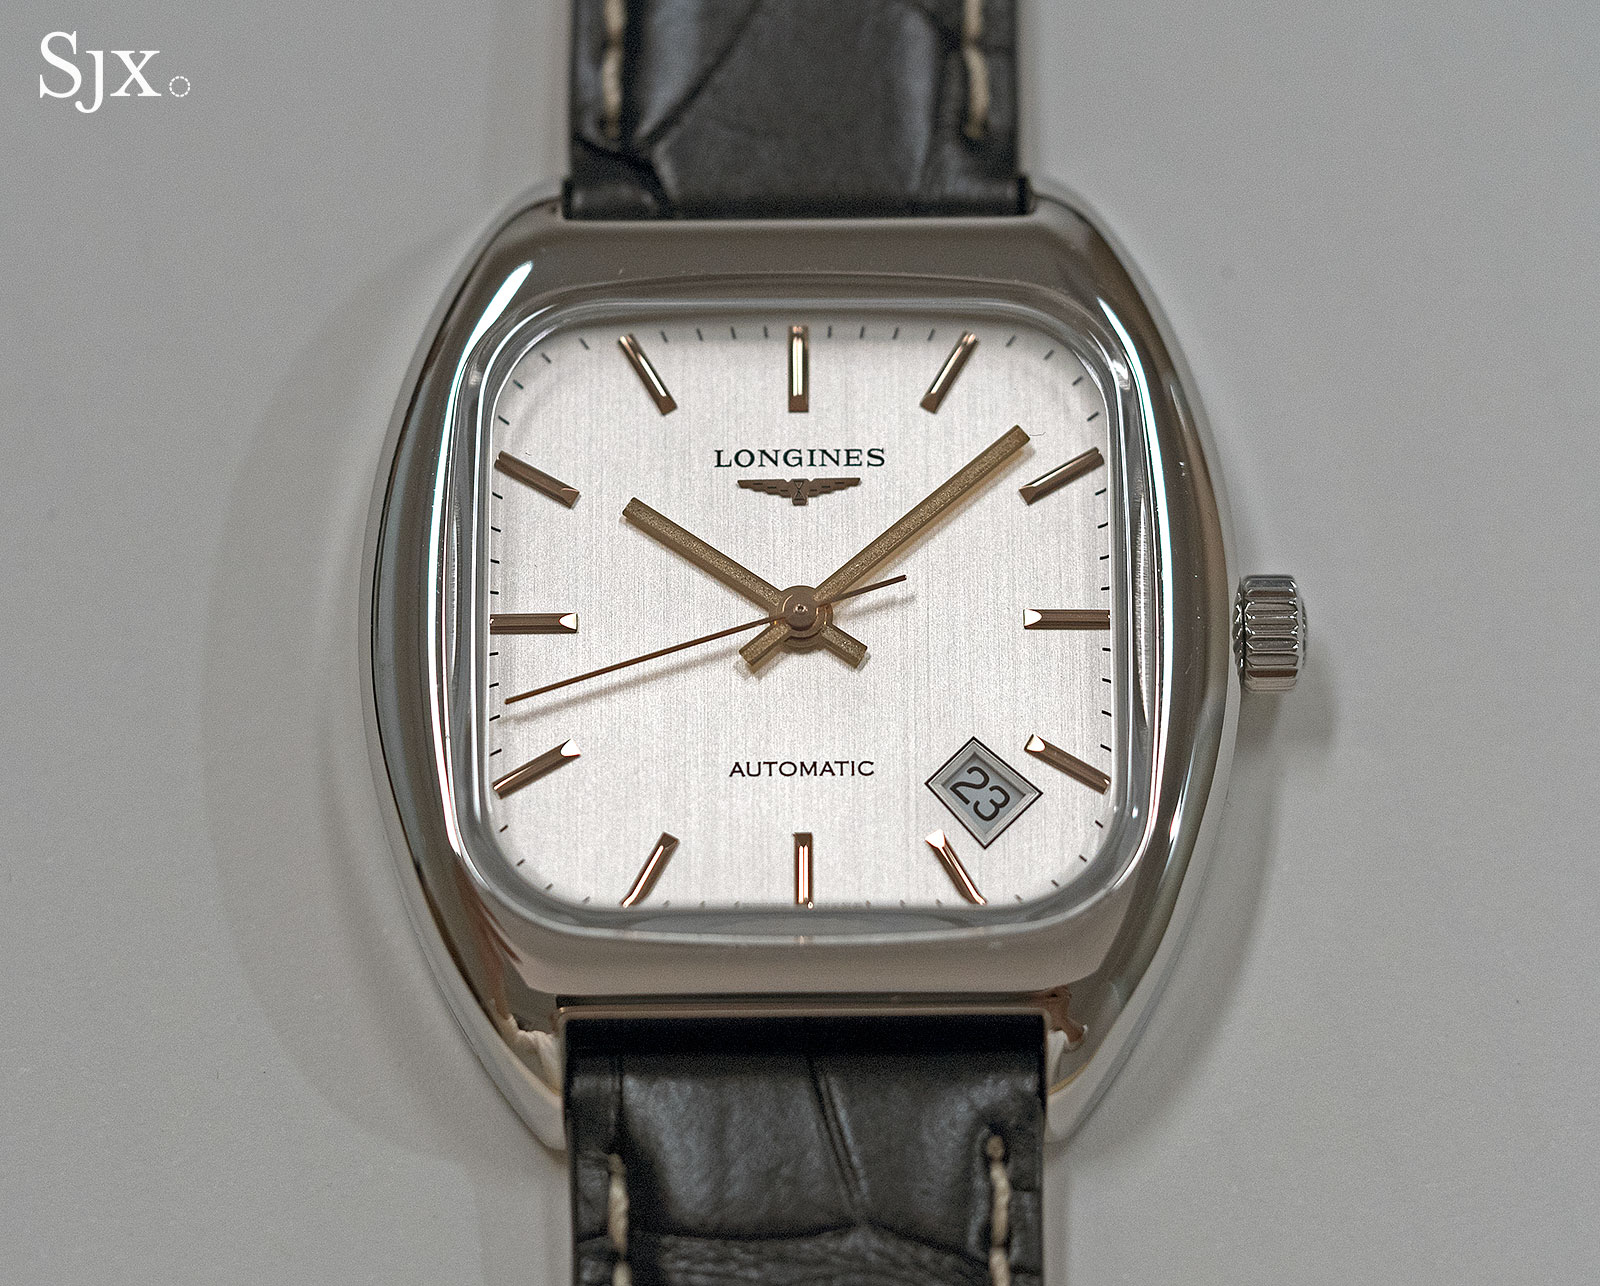 Introducing The Longines Heritage 1969 Automatic With 36mm Replica